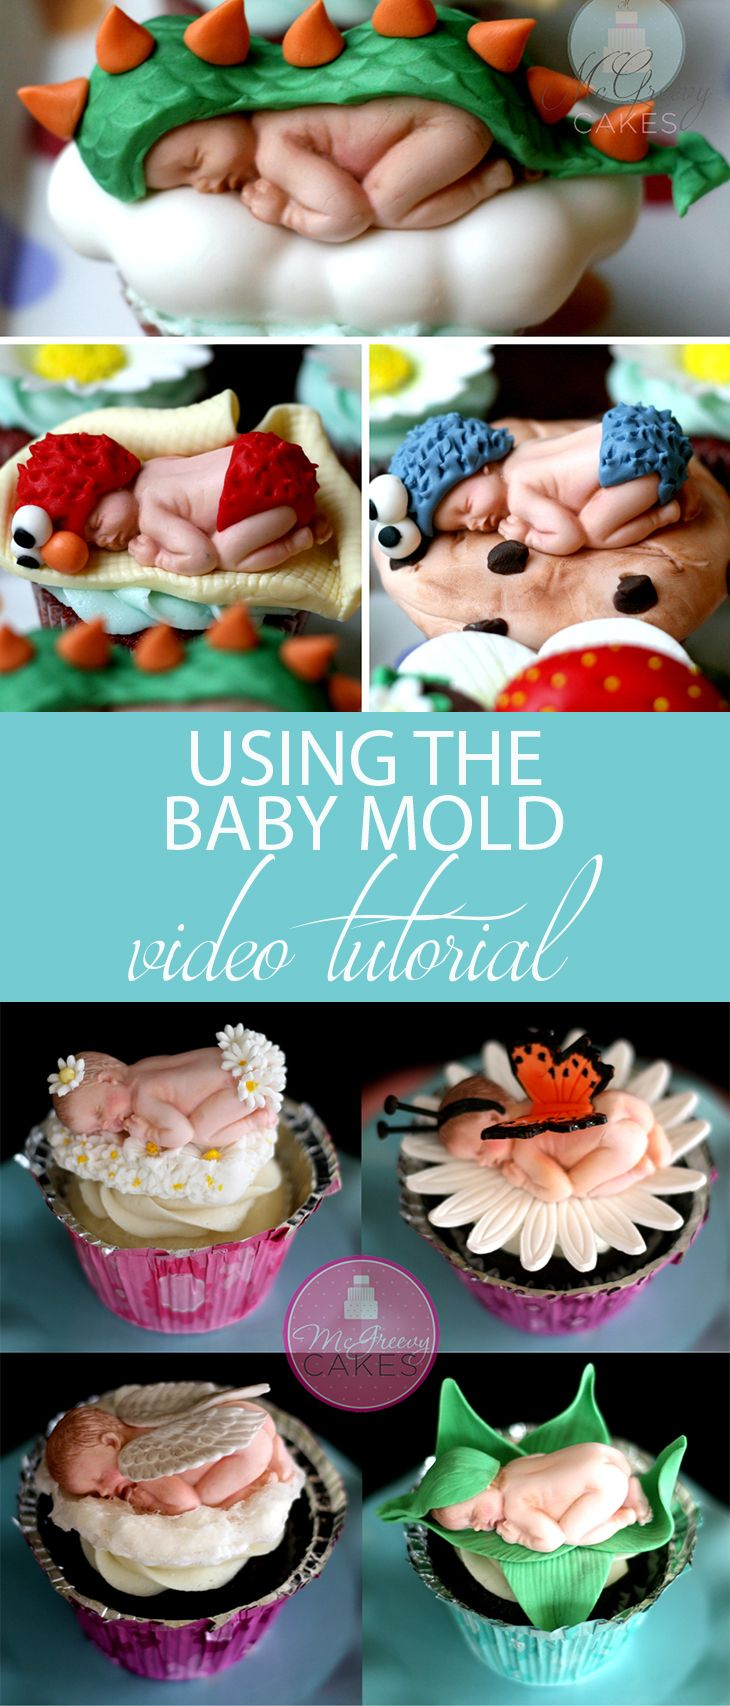 Using the baby mold tutorial!